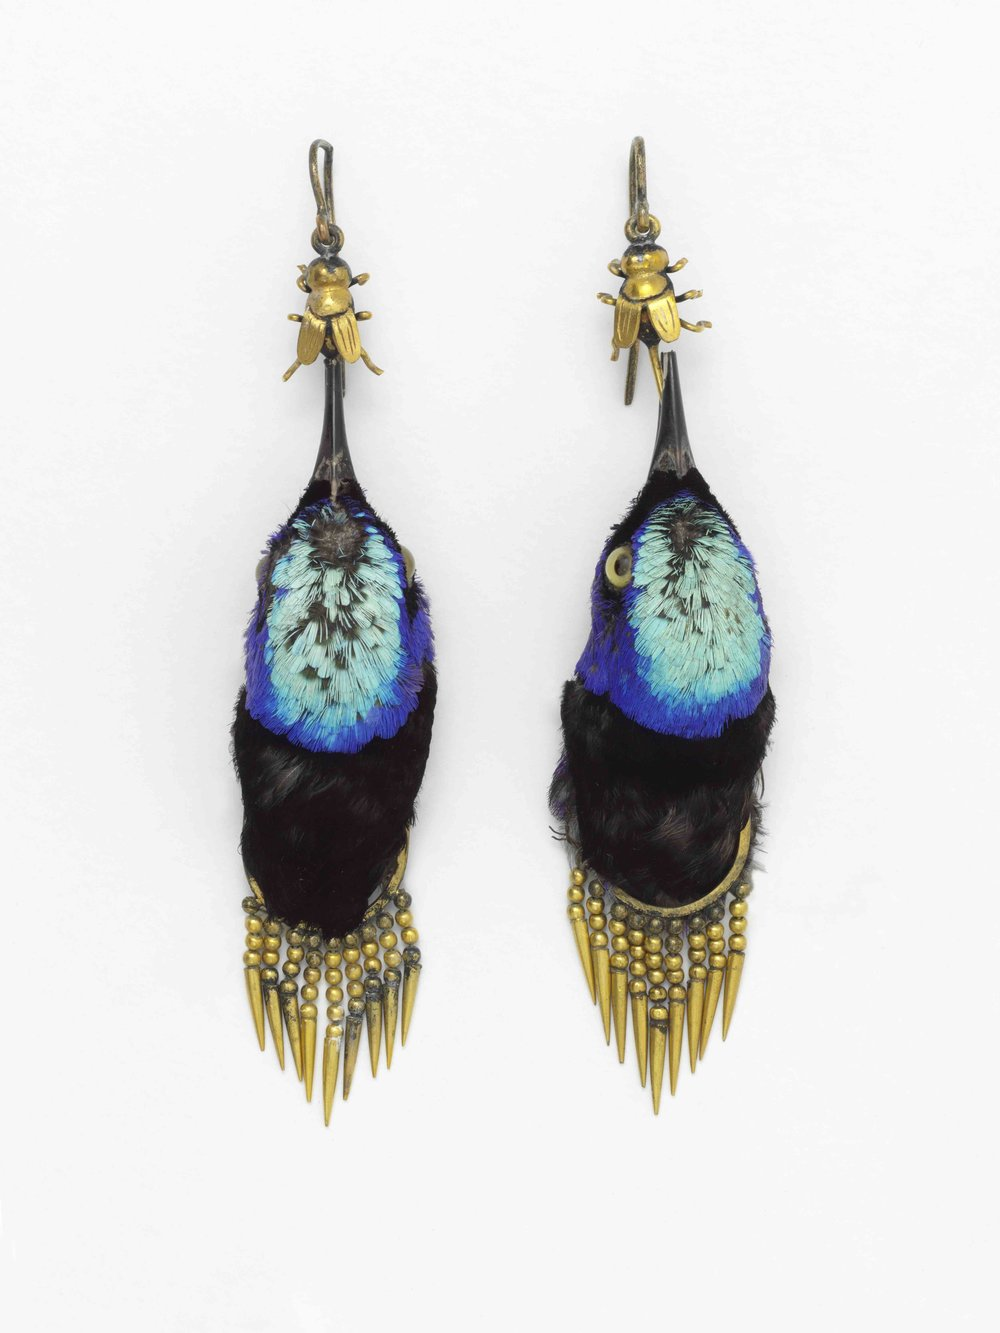 Earrings made from heads of Red Legged Honeycreeper birds, circa 1875 © Victoria and Albert Museum, London